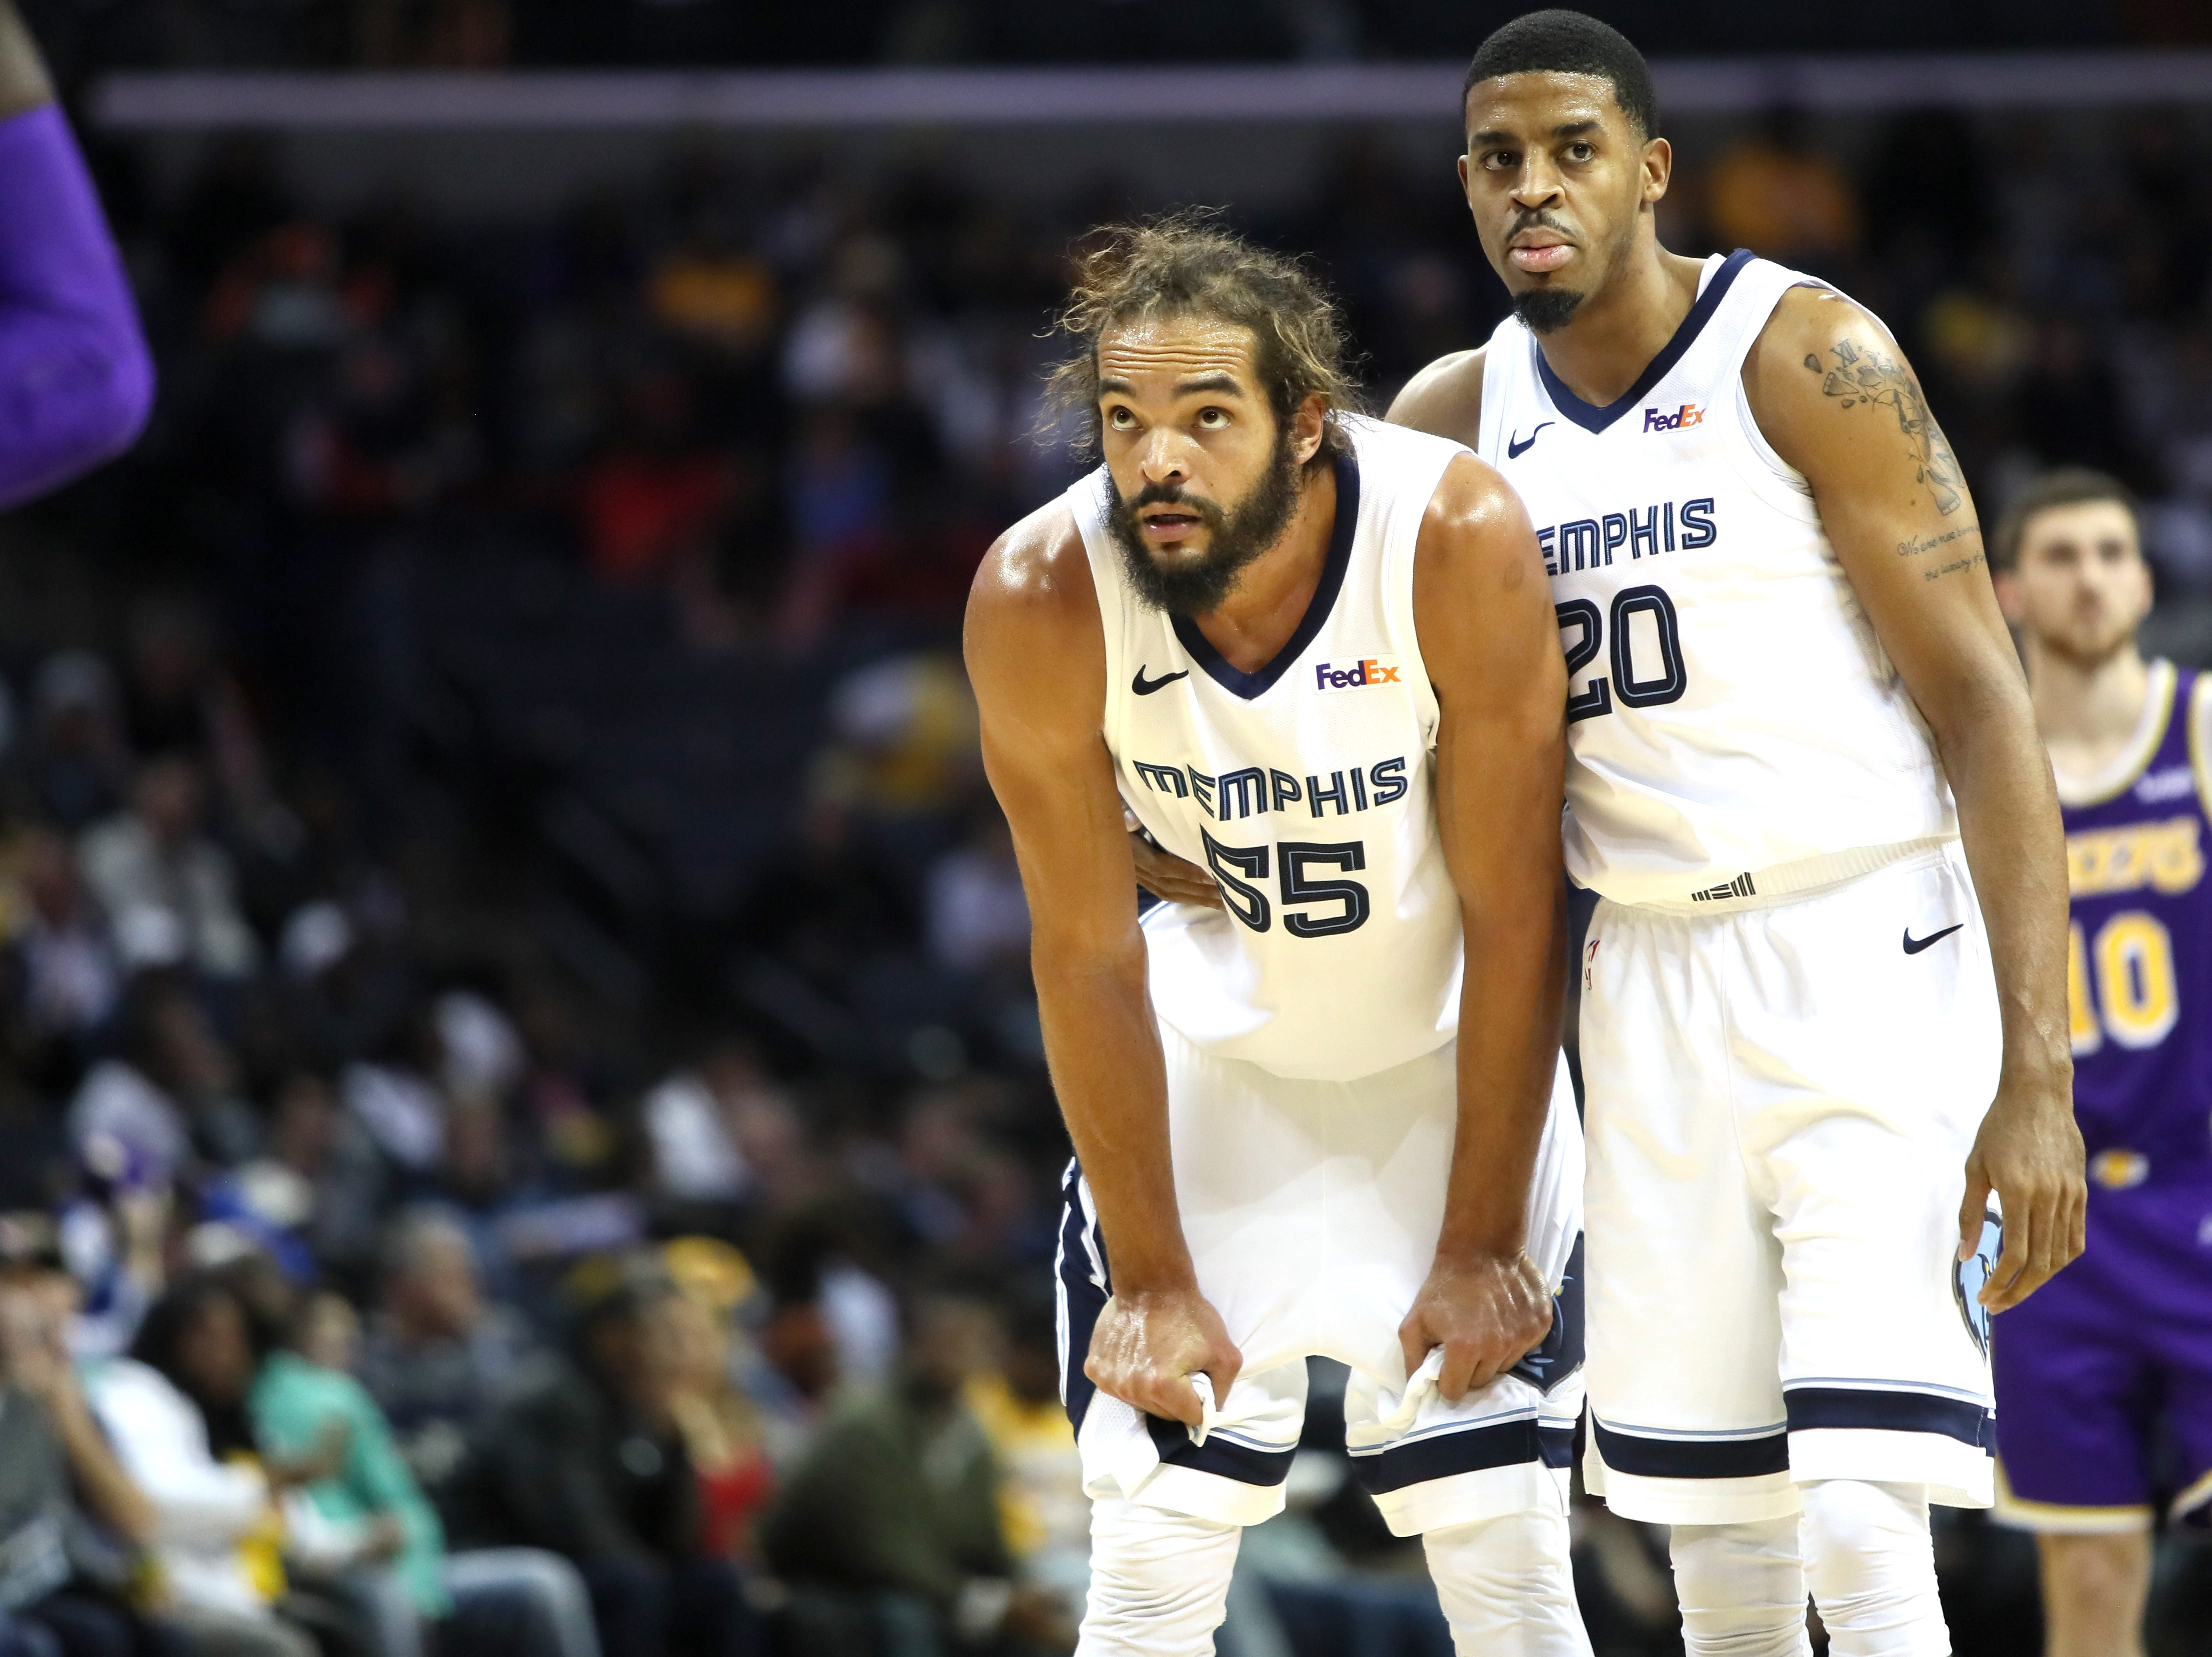 Memphis Grizzlies forward Joakim Noah is held by  his teammate DJ Stephens after committing a foul against the Los Angeles Lakers during their game at the FedExForum on Saturday, Dec. 8, 2018.